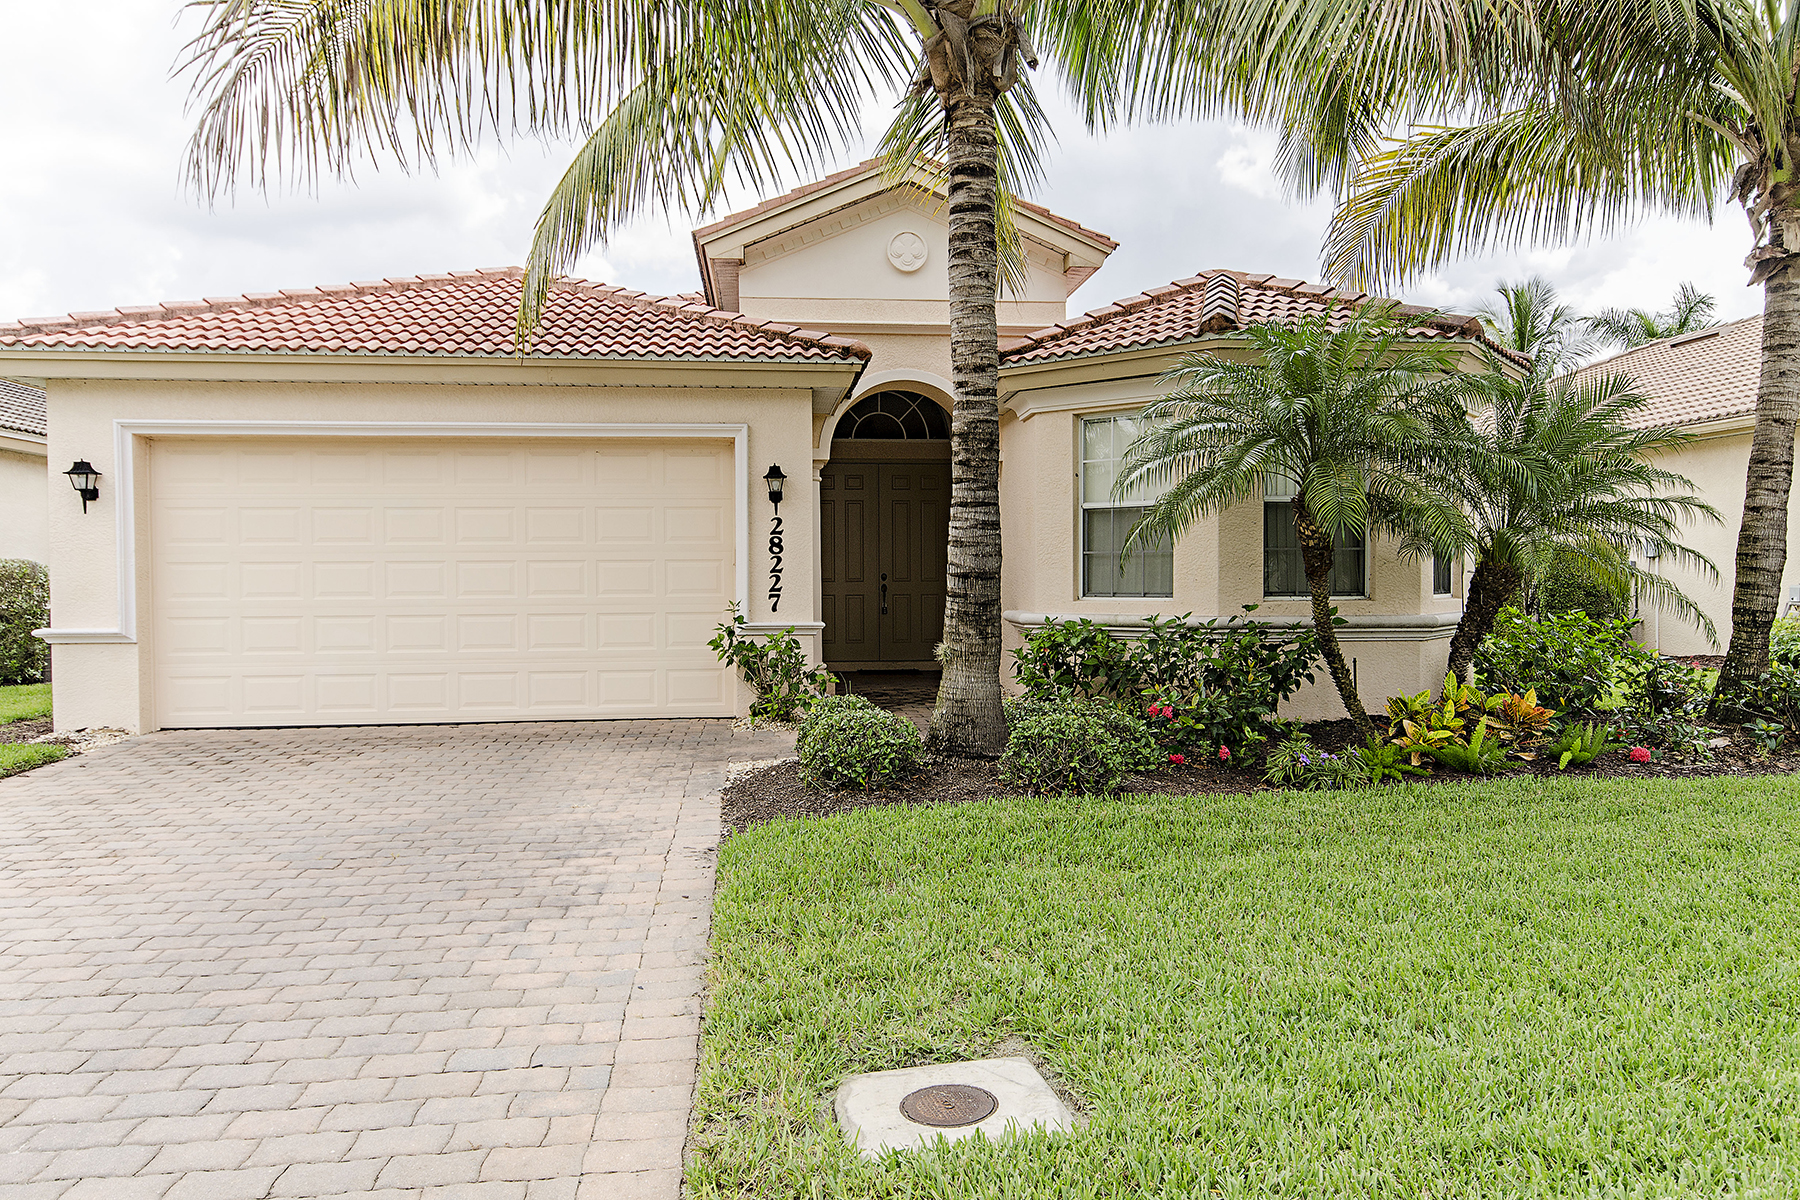 Single Family Home for Rent at SPANISH WELLS - MARBELLA 28227 Robolini Ct Bonita Springs, Florida 34135 United States